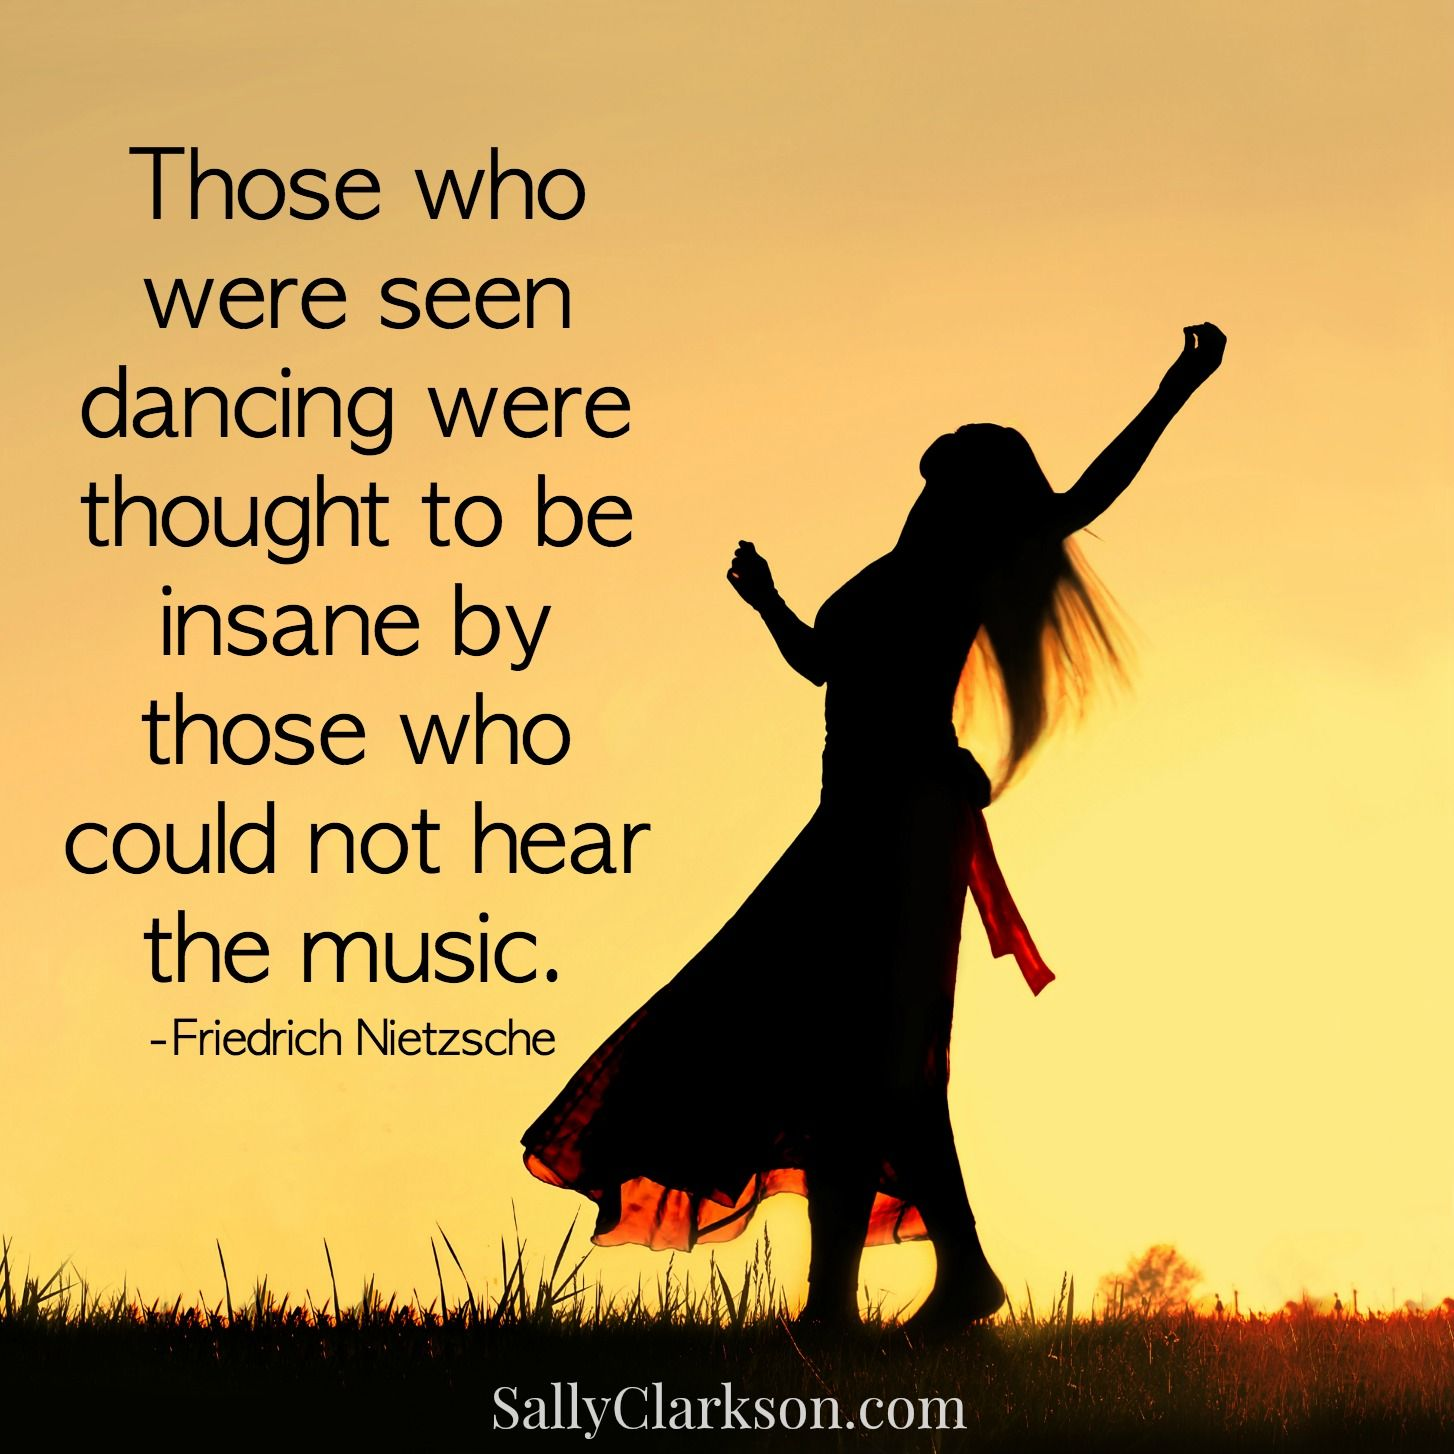 Those Who Were Seen Dancing Were Thought To Be Insane By Those Who Could Not Hear The Music Friedrich Nietzsche Friedrich Nietzsche Powerful Words Nietzsche